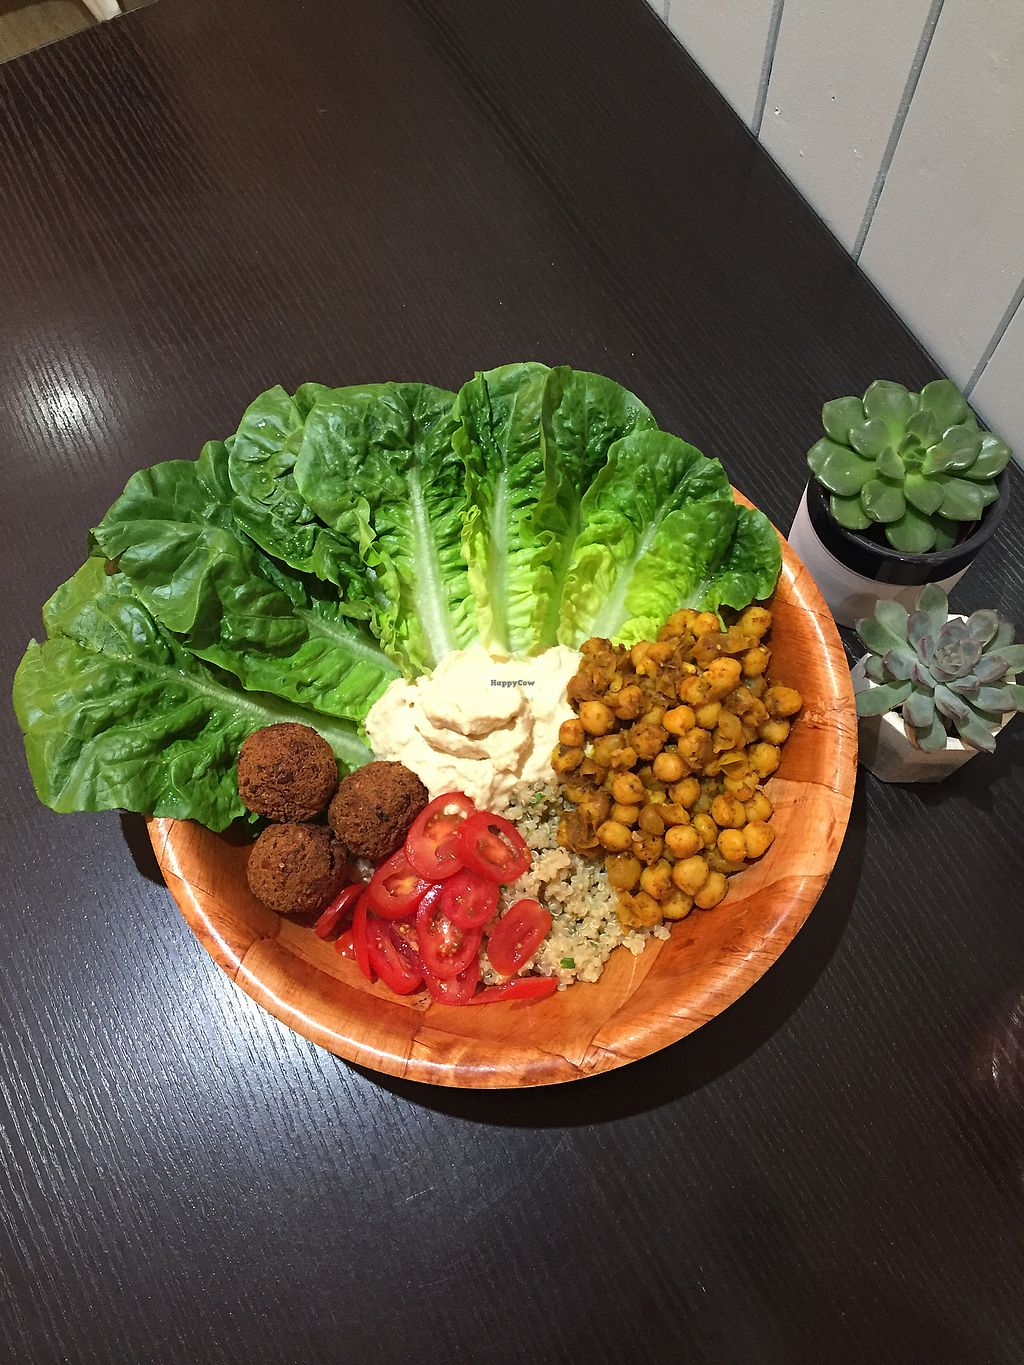 """Photo of Happy Friday Kitchen   by <a href=""""/members/profile/LaurenceWright"""">LaurenceWright</a> <br/>Falafel bowl  <br/> November 24, 2017  - <a href='/contact/abuse/image/105857/328808'>Report</a>"""